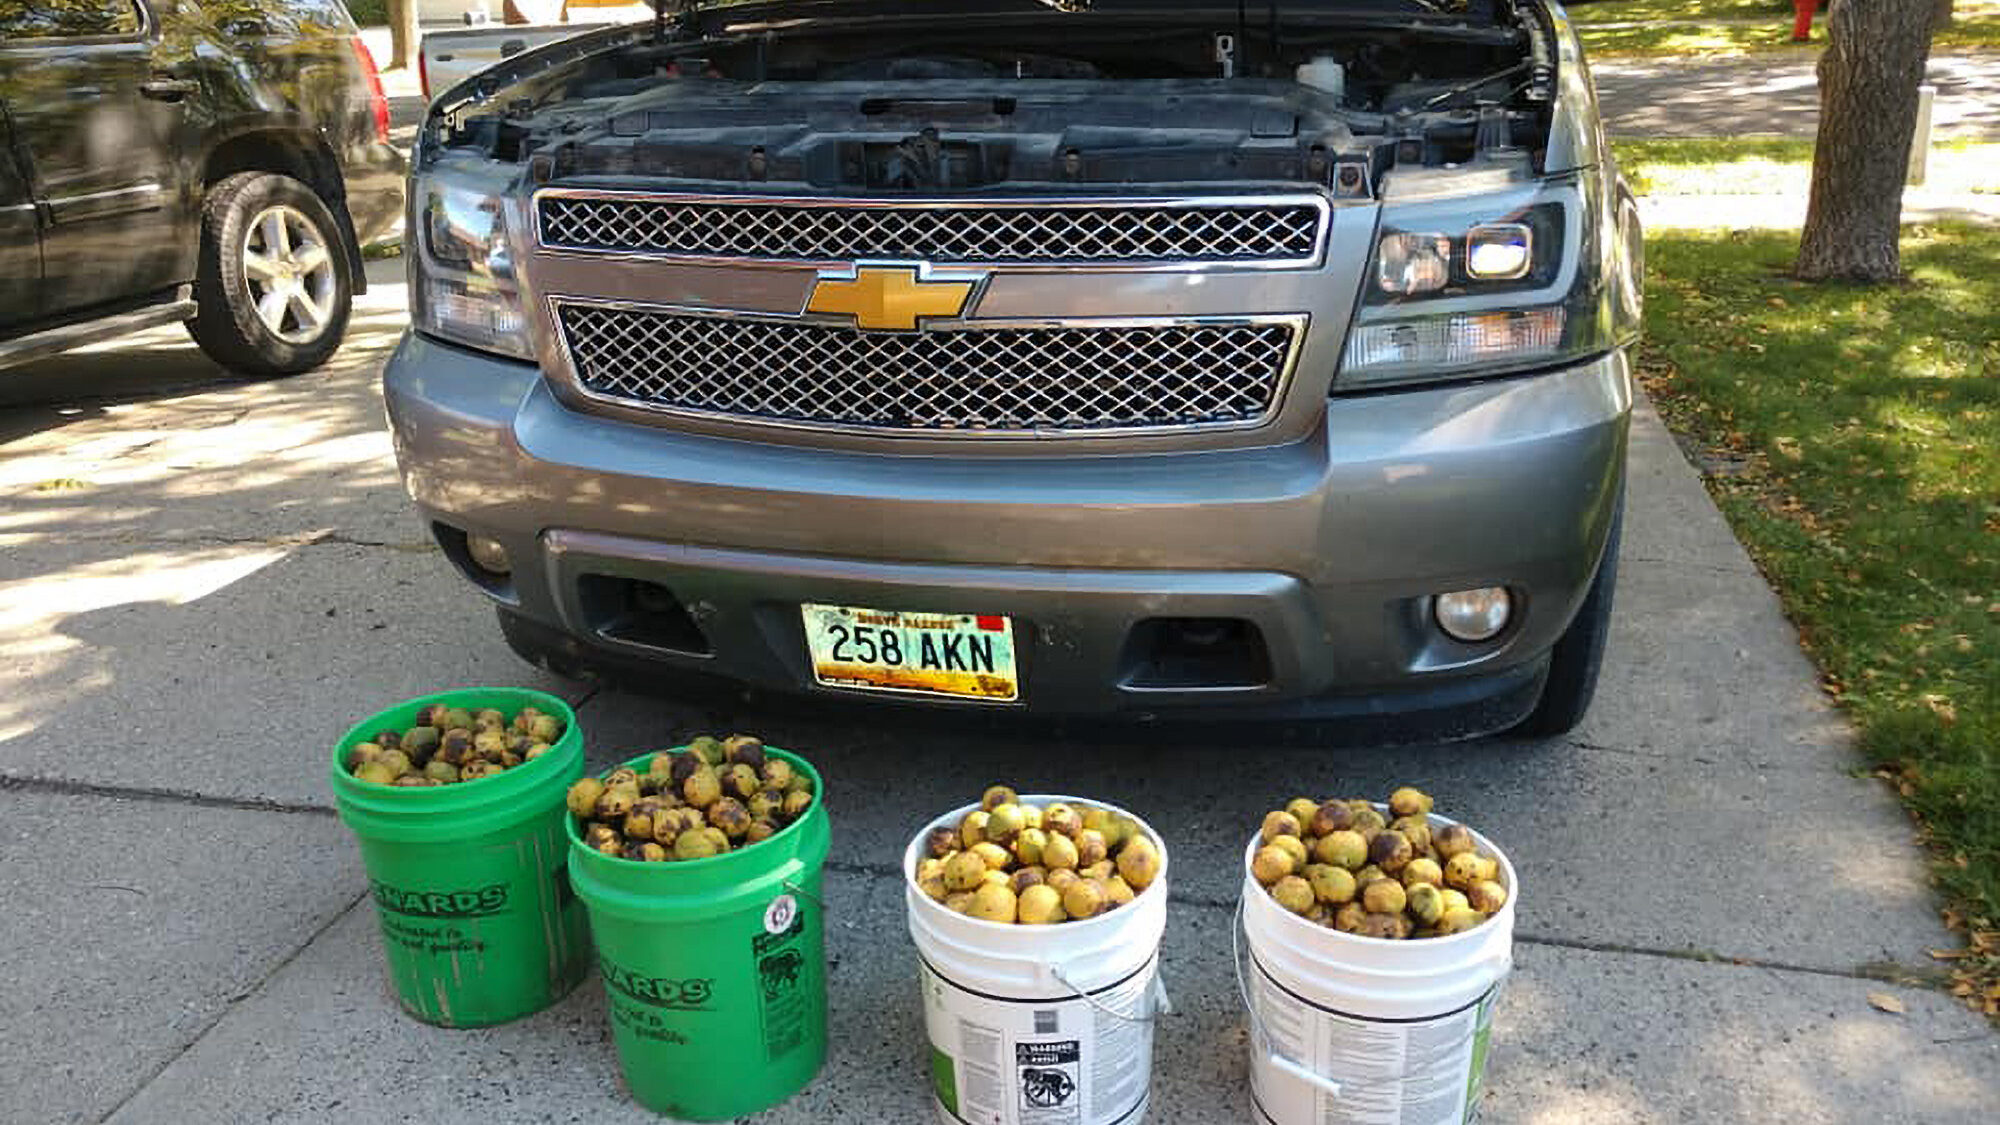 VIDEO: Nuts! Screwy Squirrel Stashes Nearly 350 Pounds Of Walnuts In A Truck